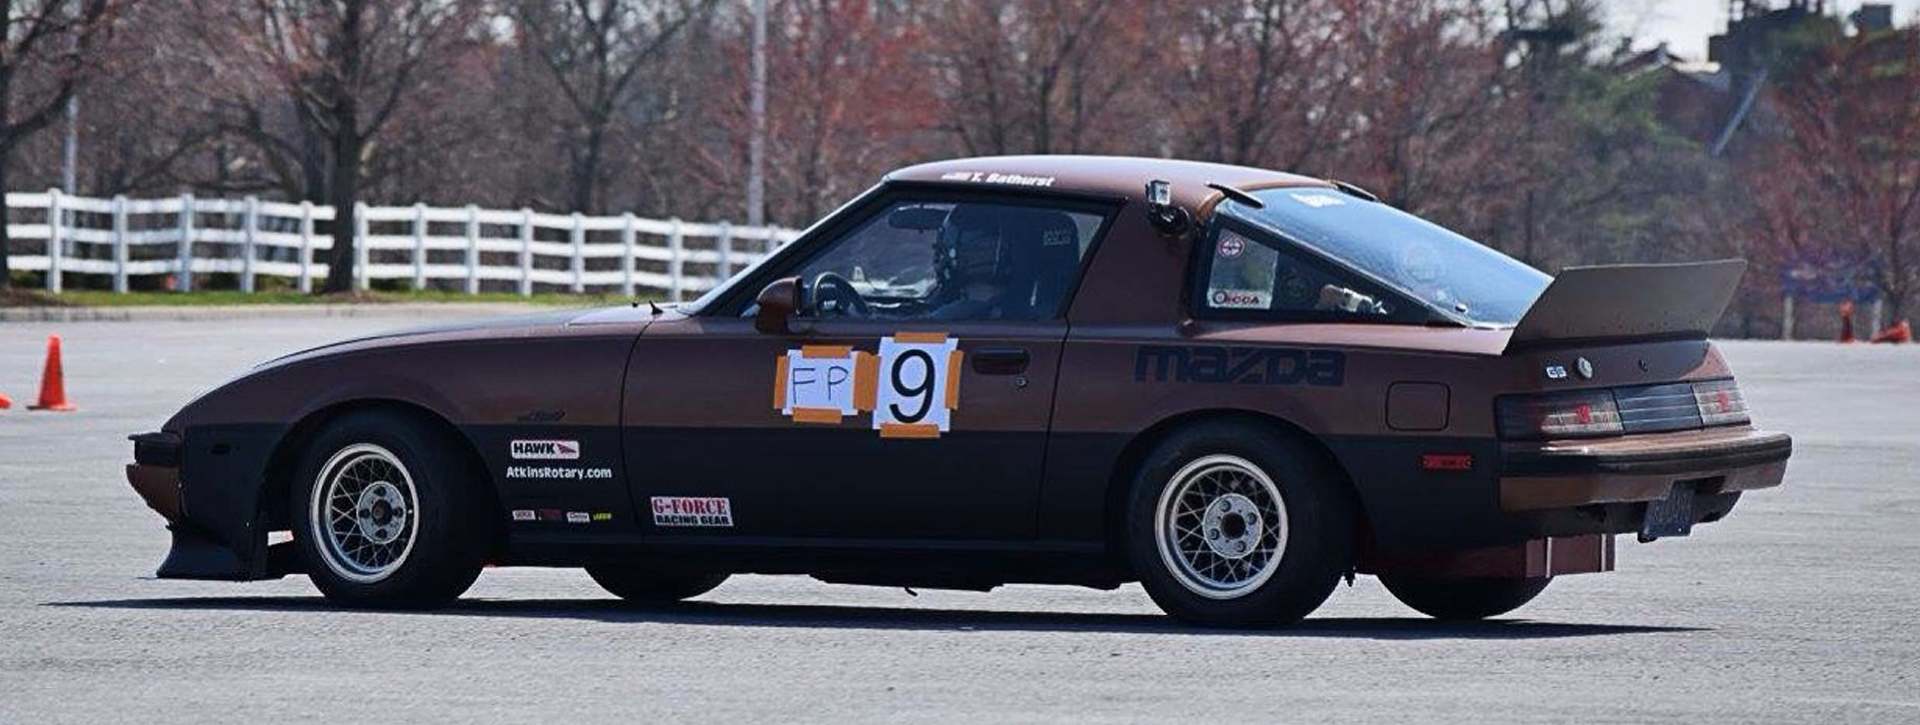 <p>Name: Taylor Bathurst From: Abbottstown, PA Runs: Autocross, Hillclimb Drives: 1985 Mazda Rx7 in F Prepared for autocross and EP for Hillclimbs Member since: 2012 My first car was a Mazda Rx8 that I got into autocross with. Found the Rx7 in a field and bought for 400 dollars. Originally was an automatic [&hellip;]</p>